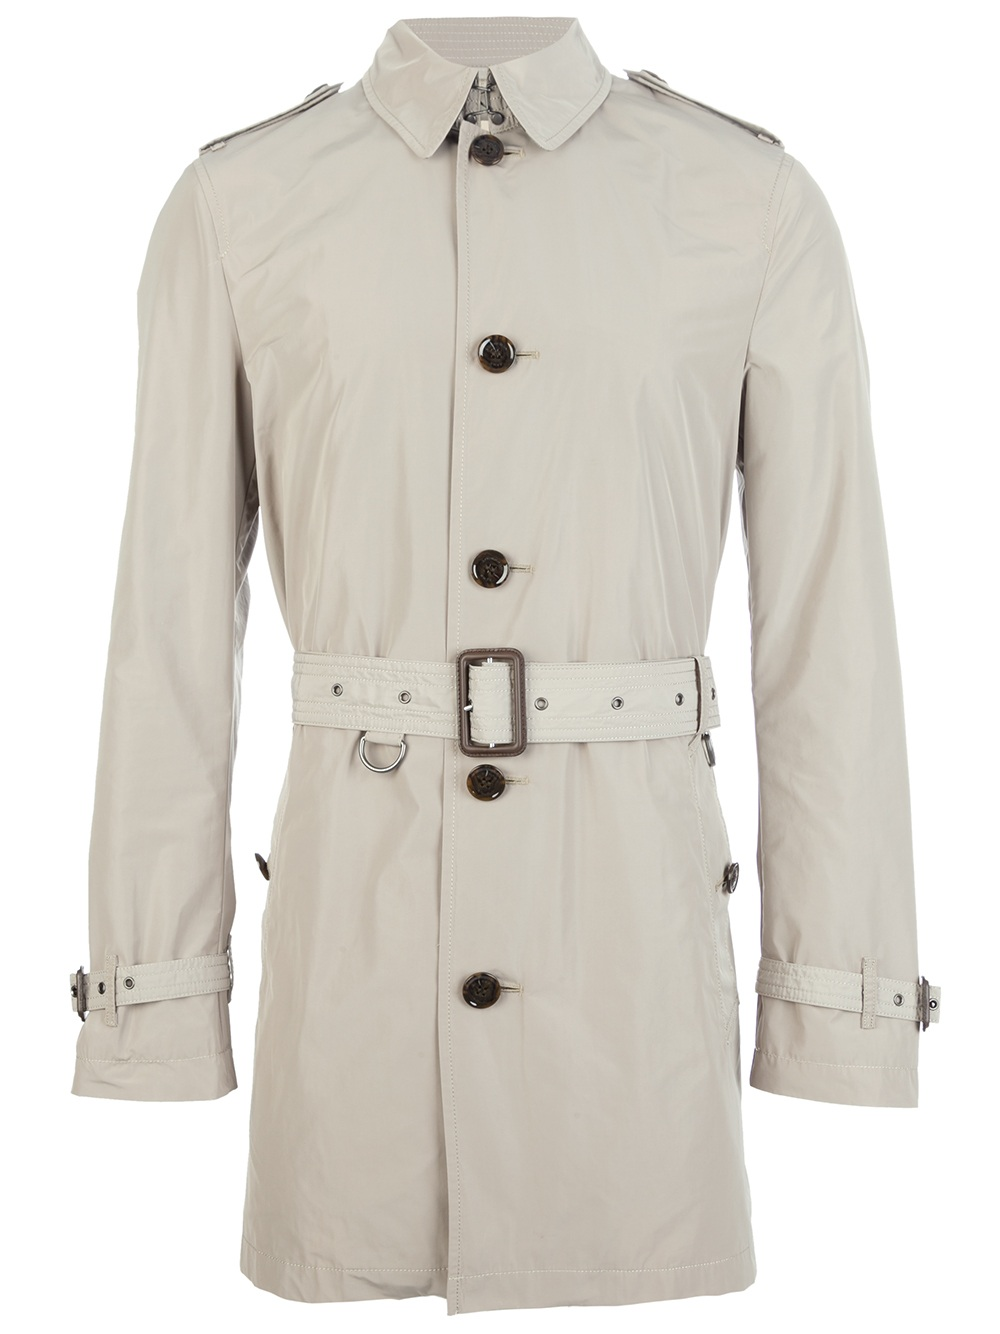 Burberry Brit Brixton Trench Coat in Gray for Men - Lyst 6f988dbc446